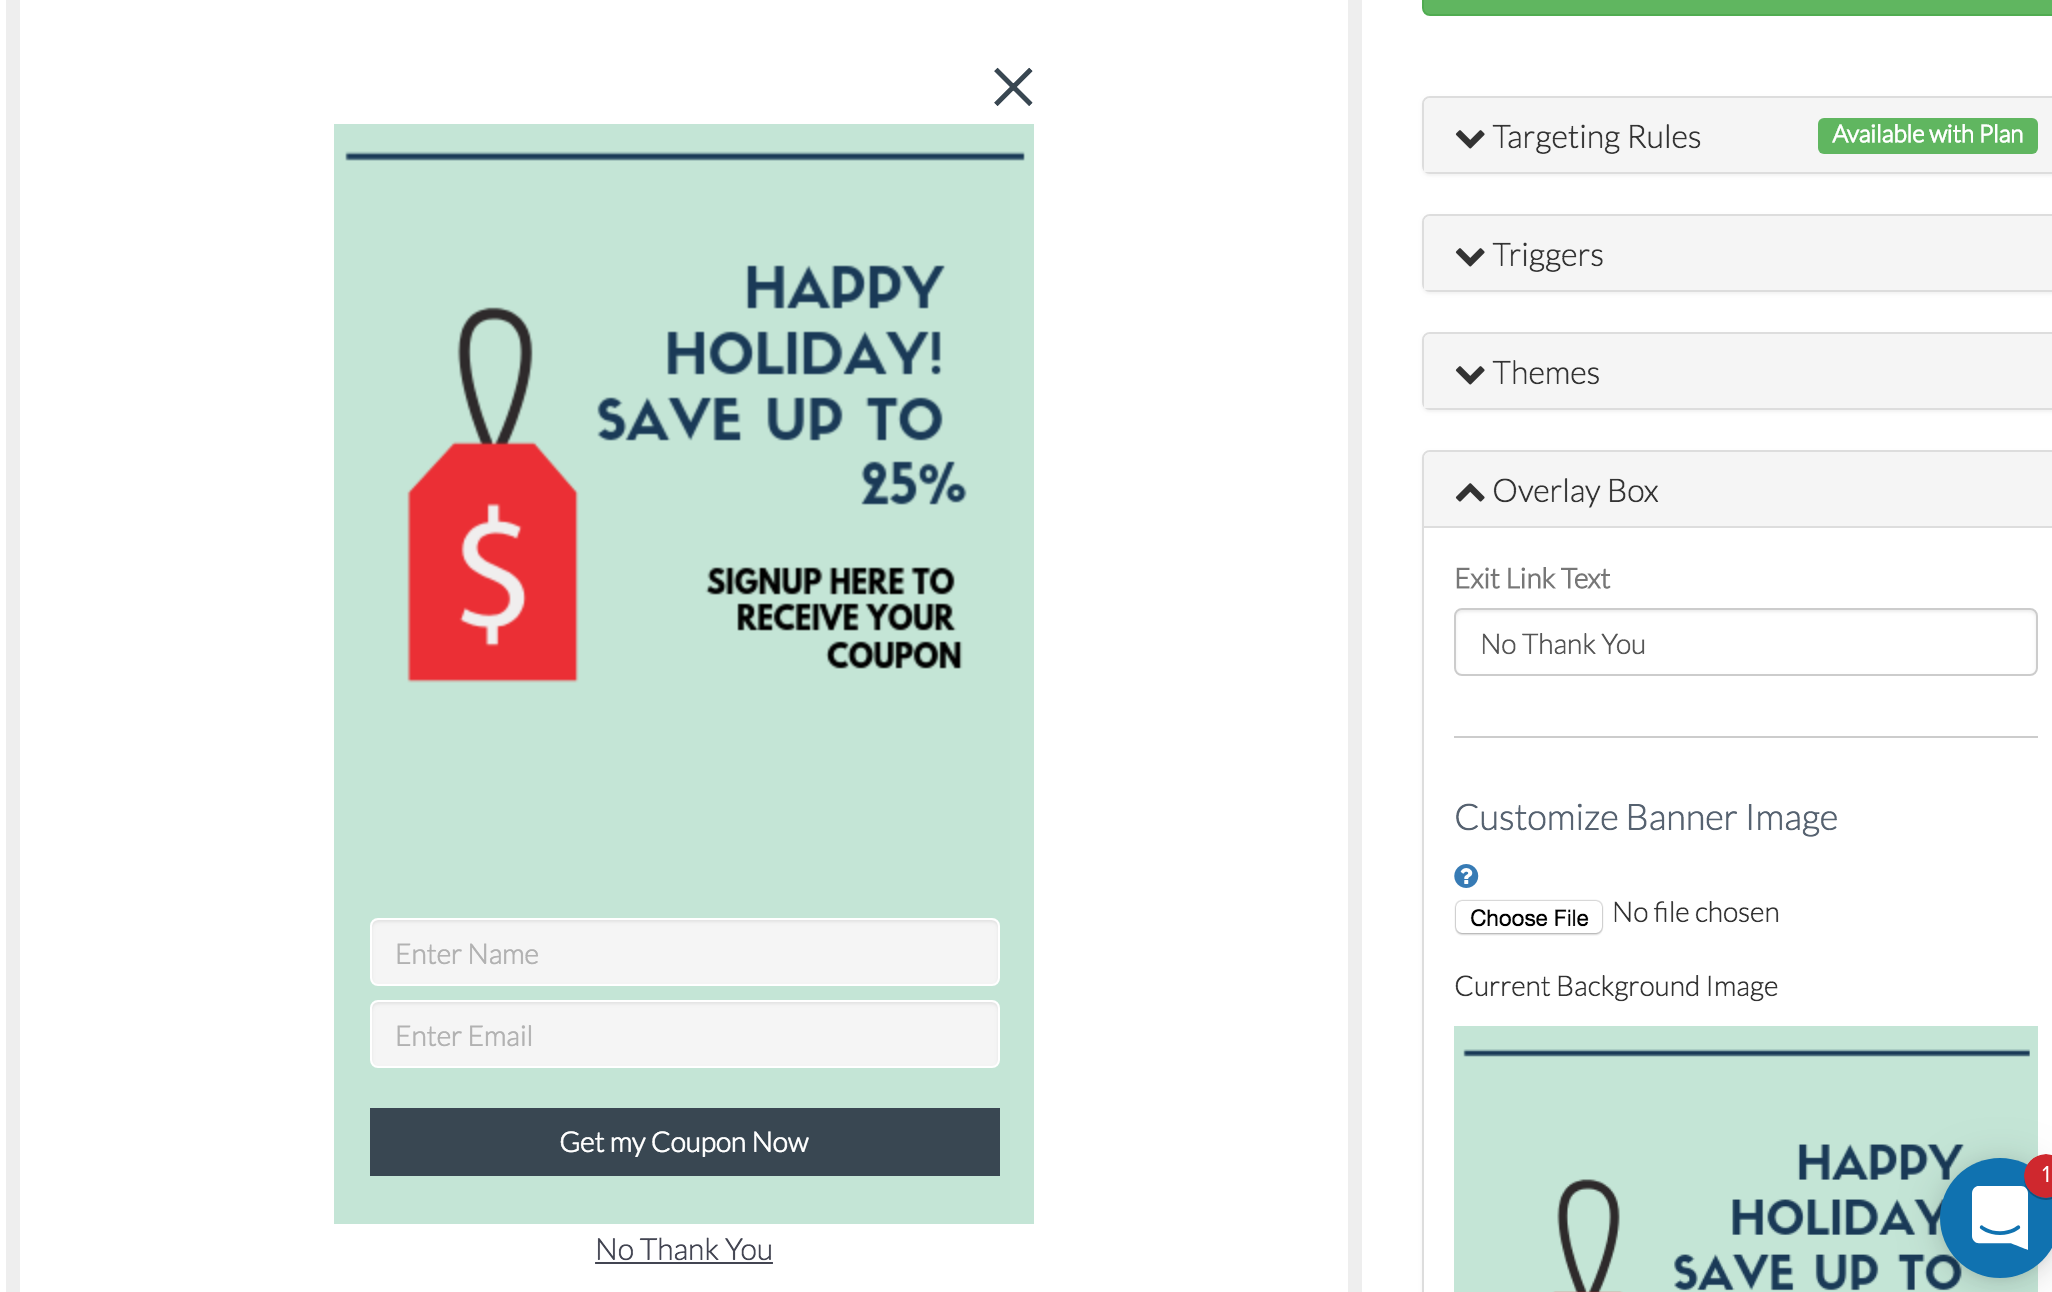 Gather Email Popup Image Designed in Canva